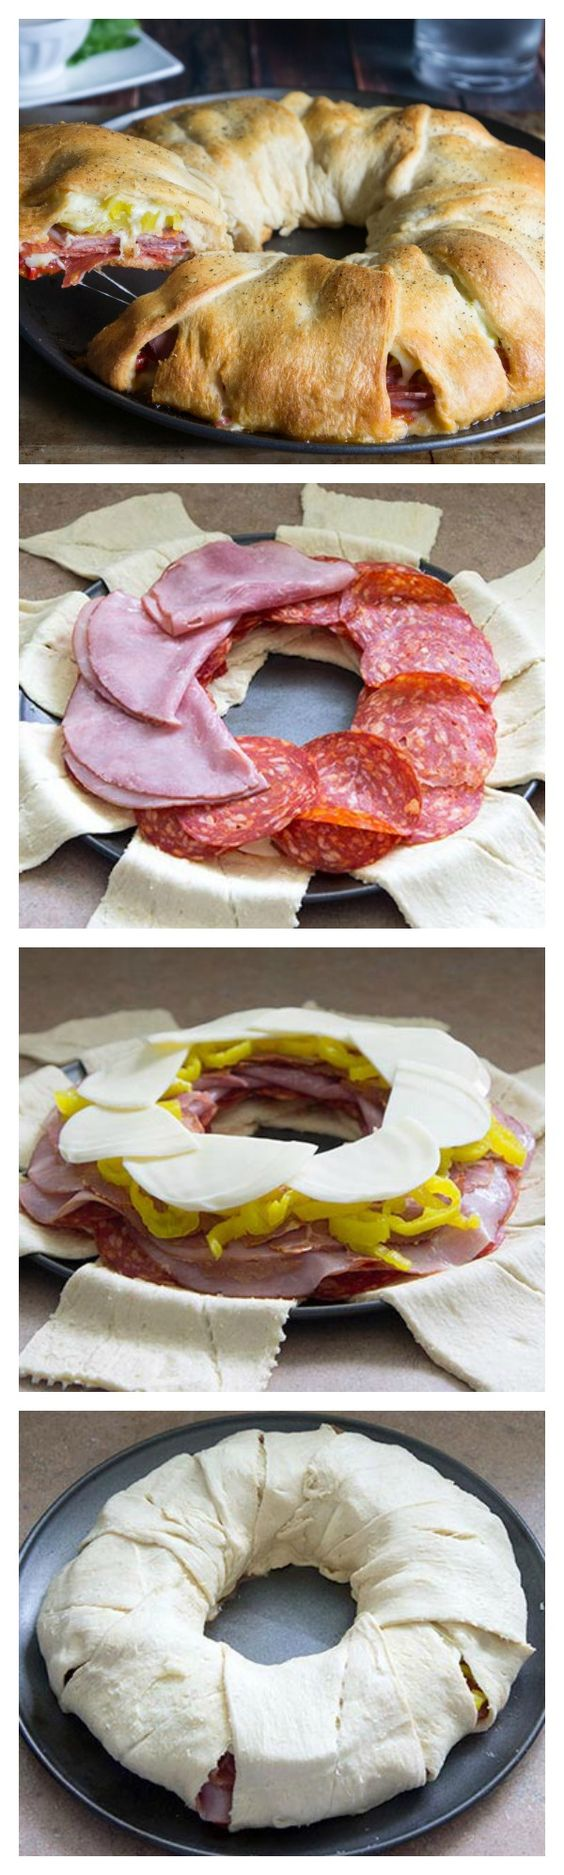 Italian Crescent Ring - a favorite sandwich combo made with crescents!.... I made one this past weekend and it was great!! just followed directions but next time I'll need to make 2!!!